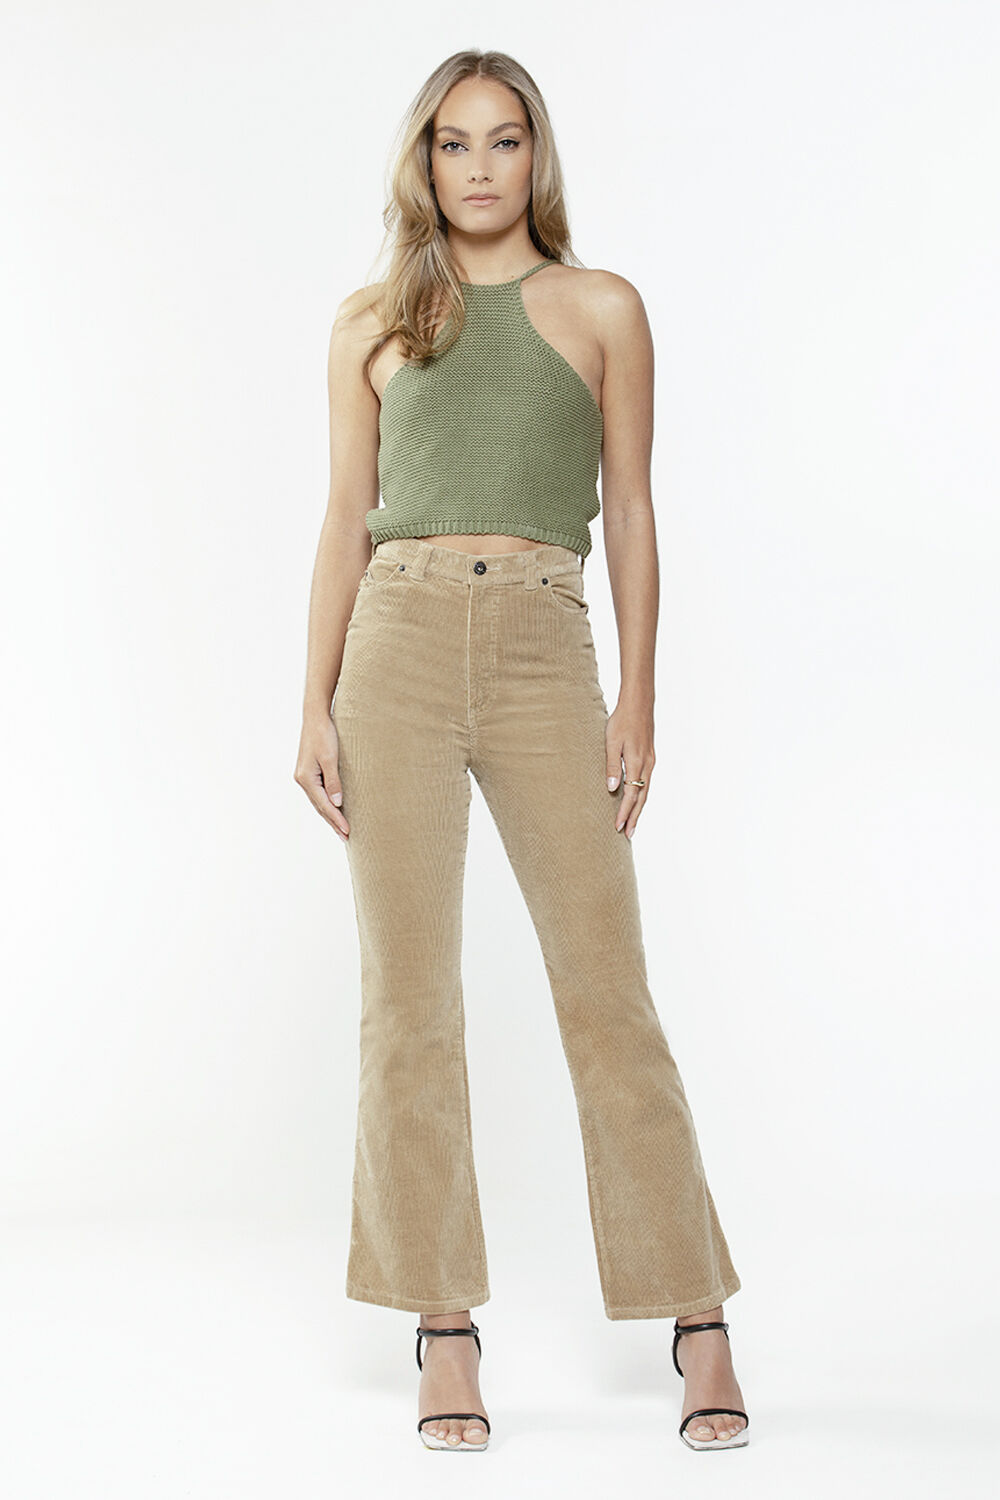 ELIANA KNIT TOP in colour IVY GREEN